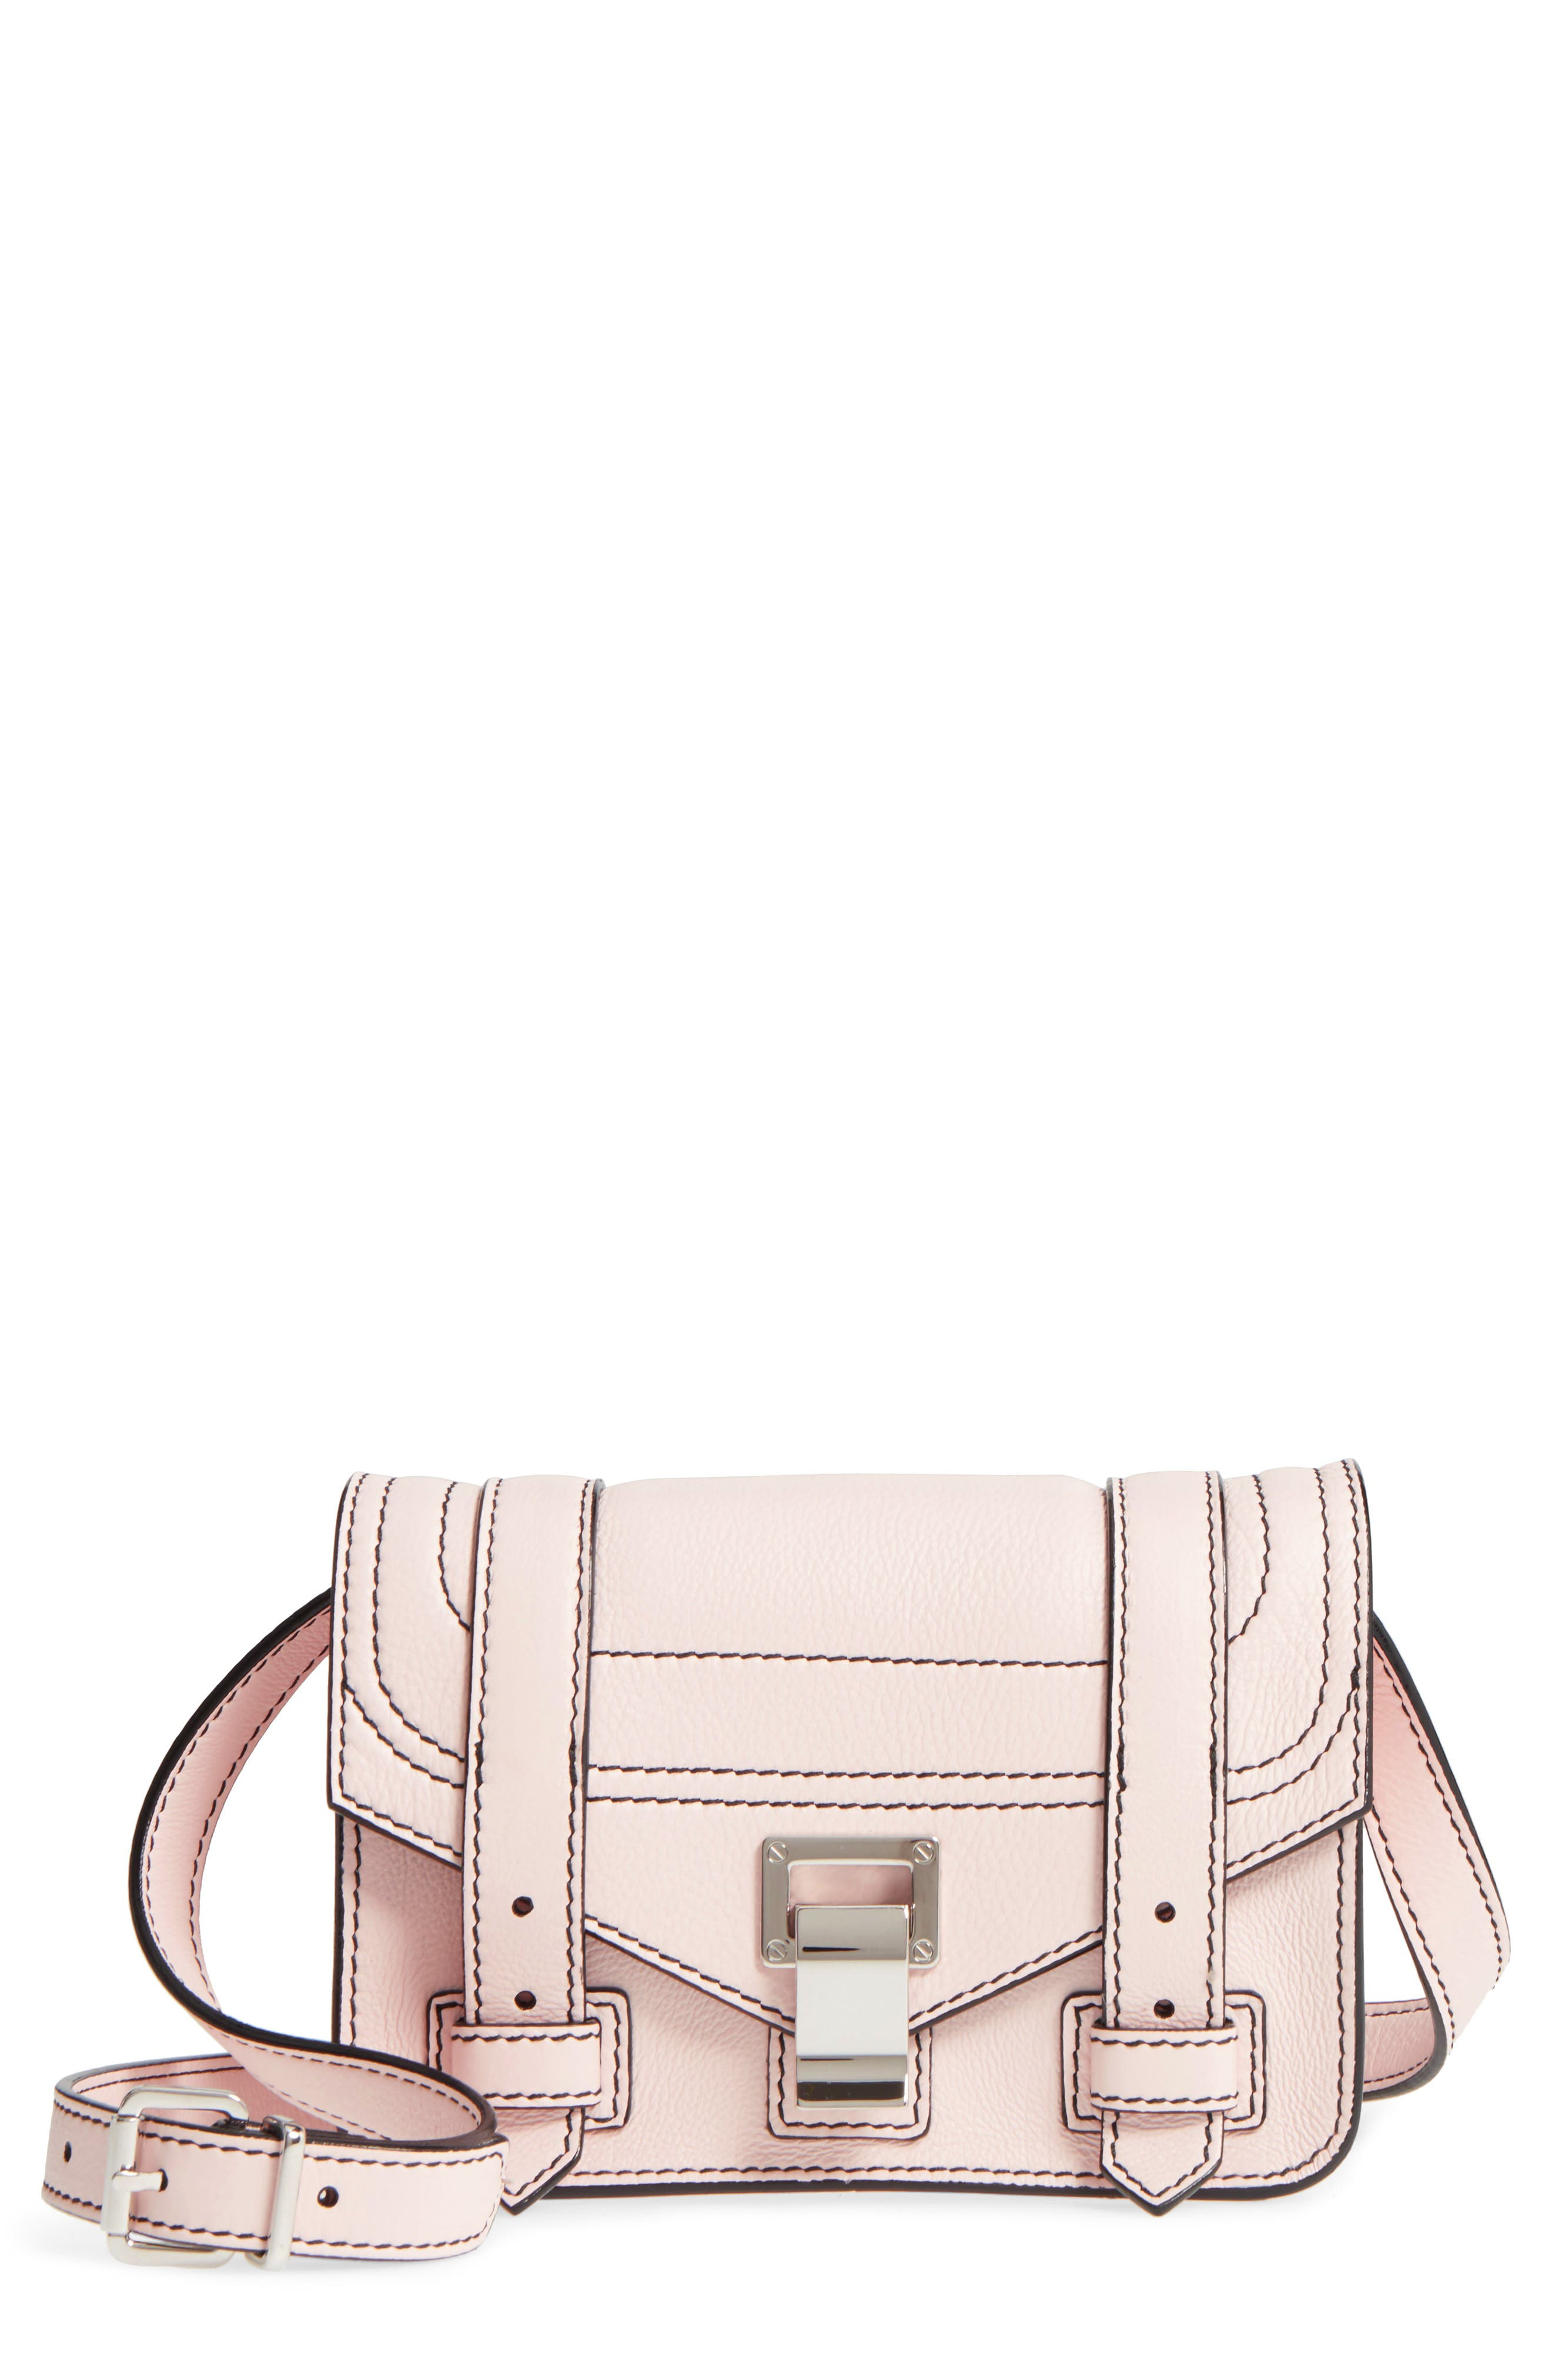 Alternate Image 1 Selected - Proenza Schouler Mini PS1 Leather Crossbody Bag